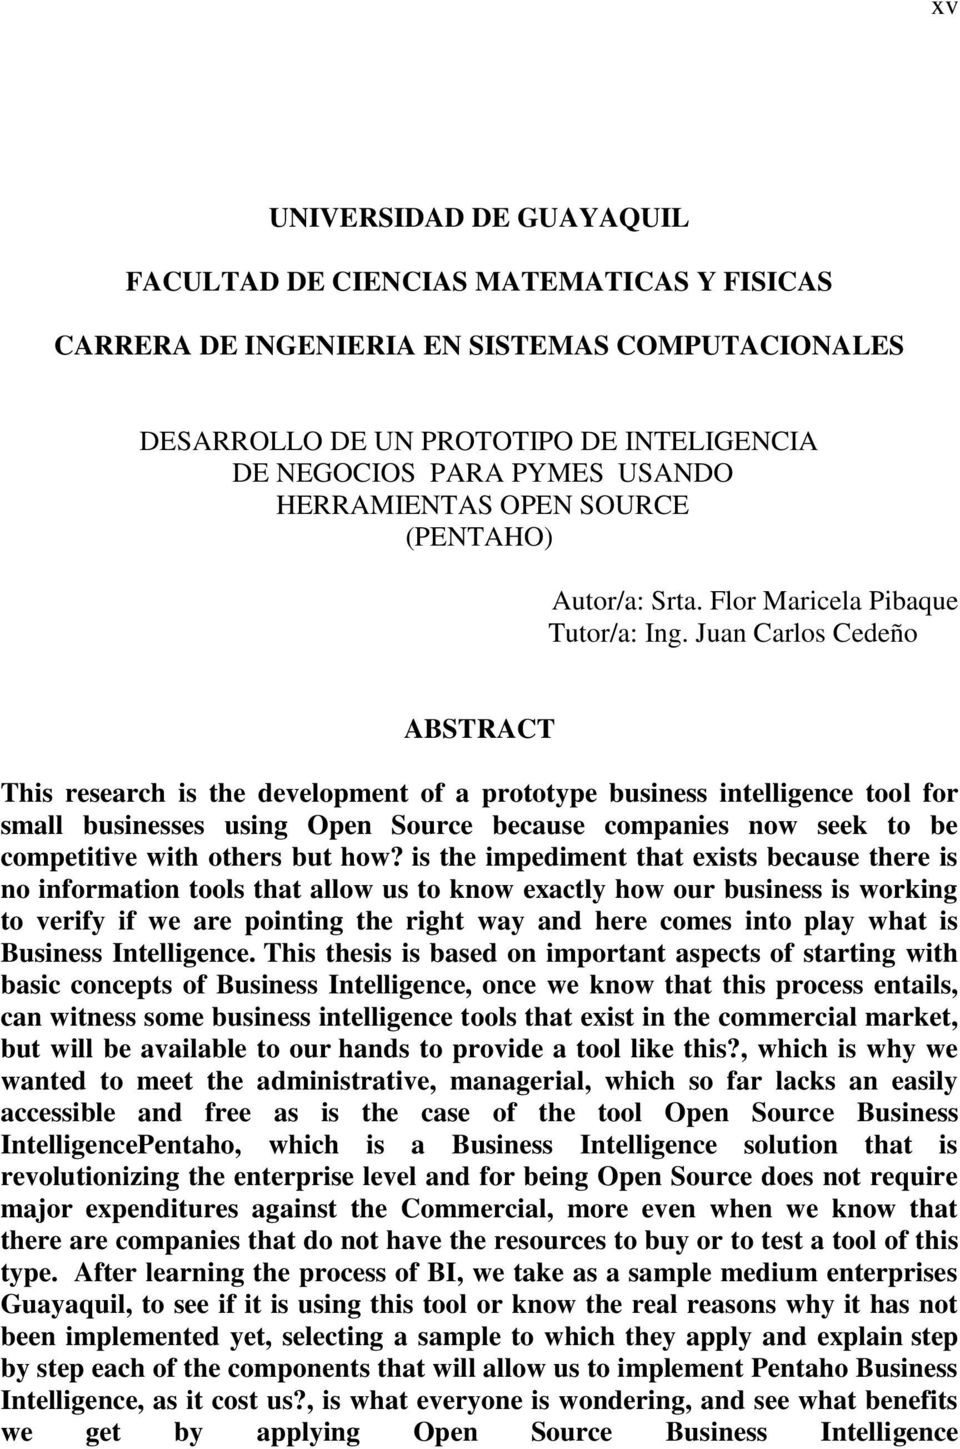 Juan Carlos Cedeño ABSTRACT This research is the development of a prototype business intelligence tool for small businesses using Open Source because companies now seek to be competitive with others